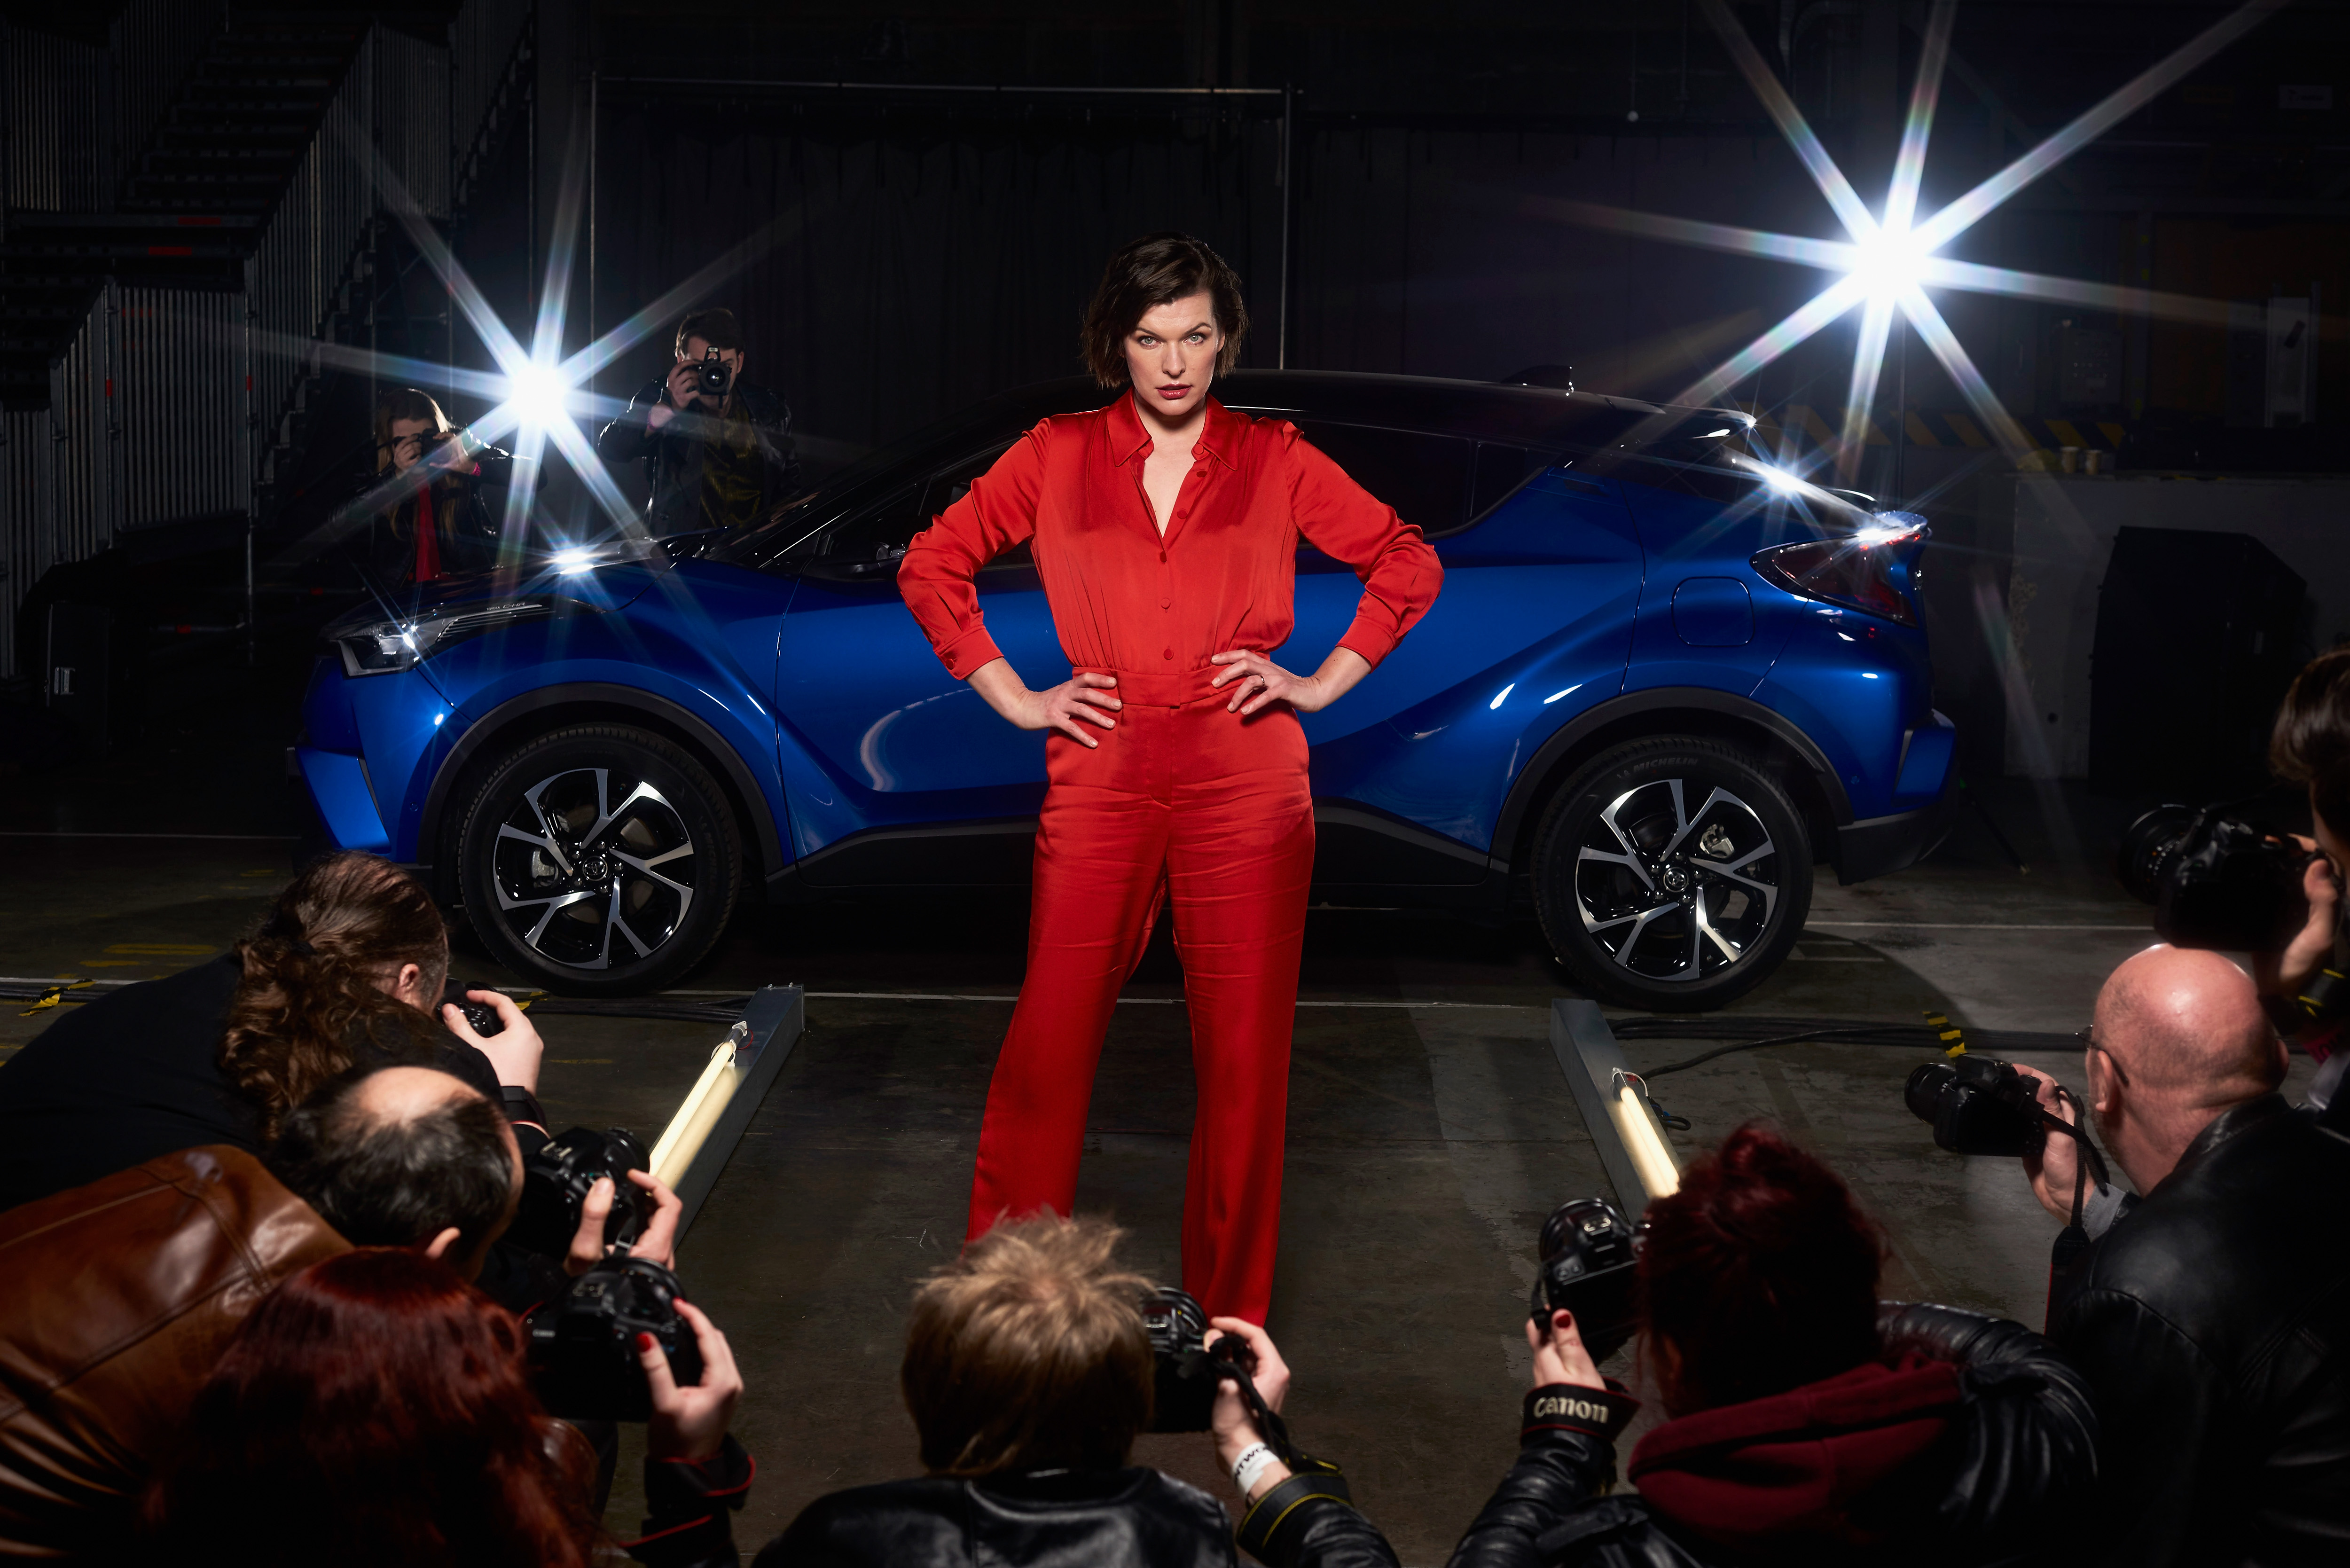 LONDON, ENGLAND - FEBRUARY 02: Milla Jovovich, actress and model, is captured stepping out of the new Toyota C-HR onto a catwalk at the world's first drive through immersive theatre experience on February 2, 2017 in London, England. 'The Night that Flows' saw 100 guests experience the immersive event, which brought to life the different features of the new Toyota C-HR. (Photo by Gareth Cattermole/Getty Images for Toyota) *** Local Caption *** Milla Jovovich